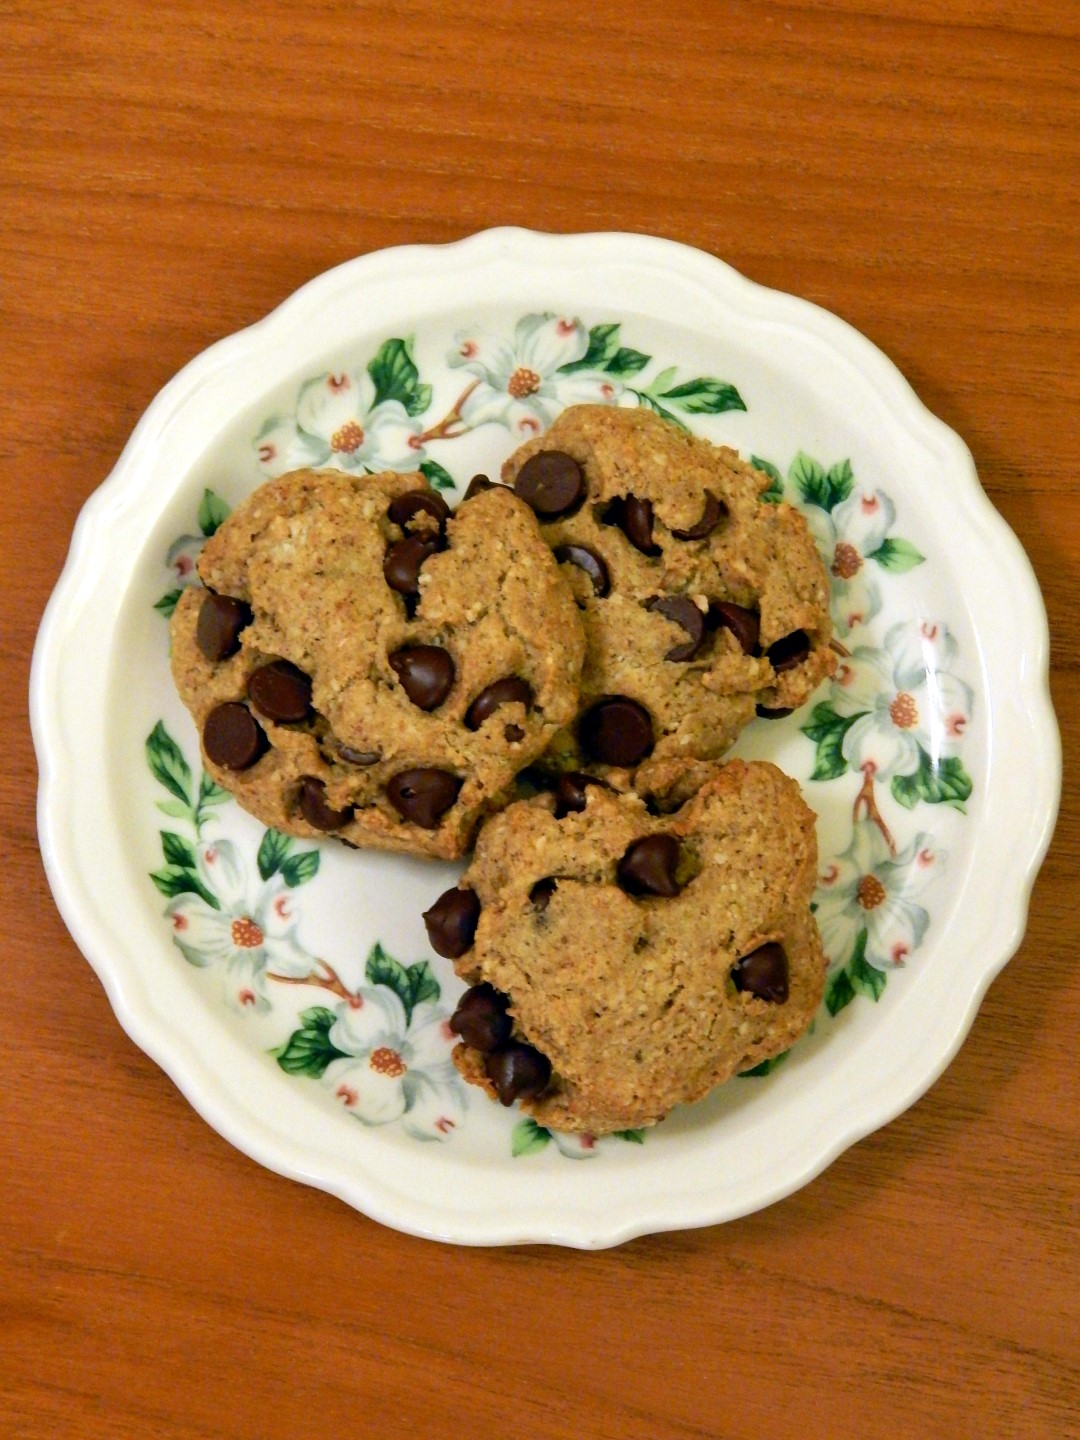 Plate with three chocolate chip cookies.